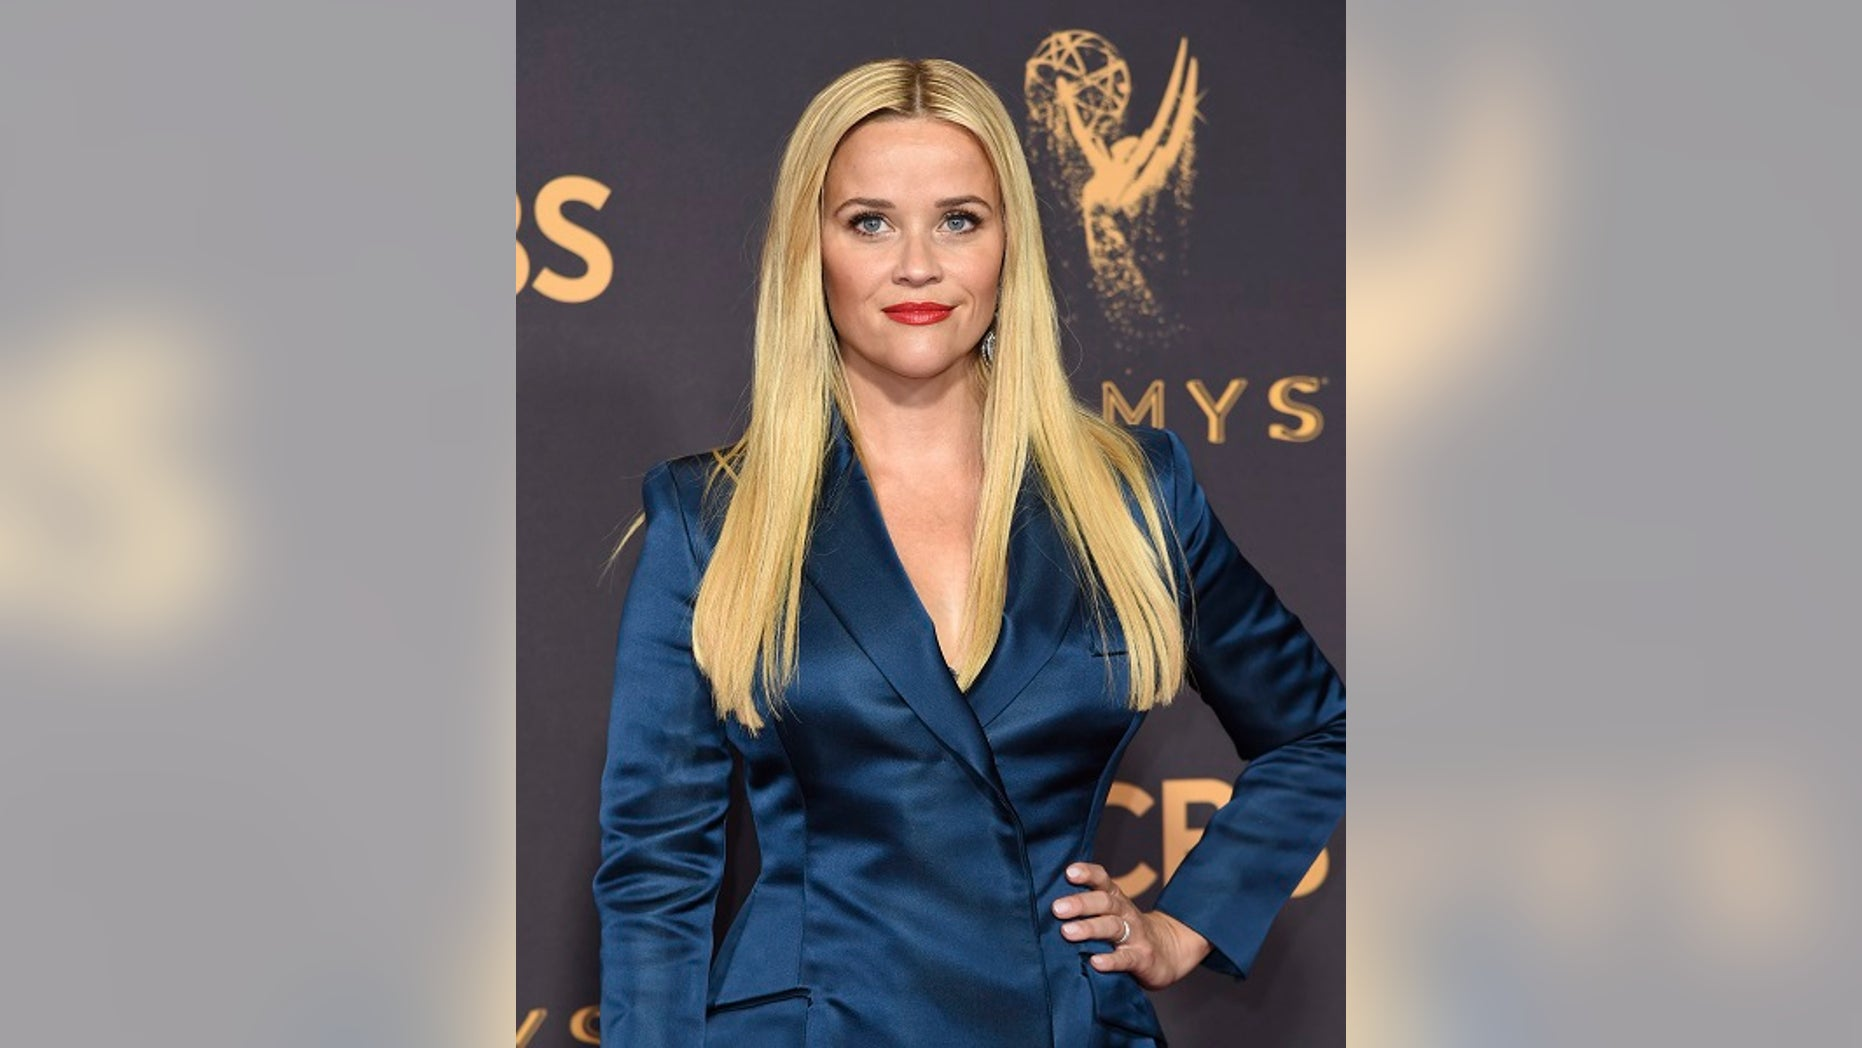 Reese Witherspoon revealed she was sexually assaulted by a director when she was 16 years old.